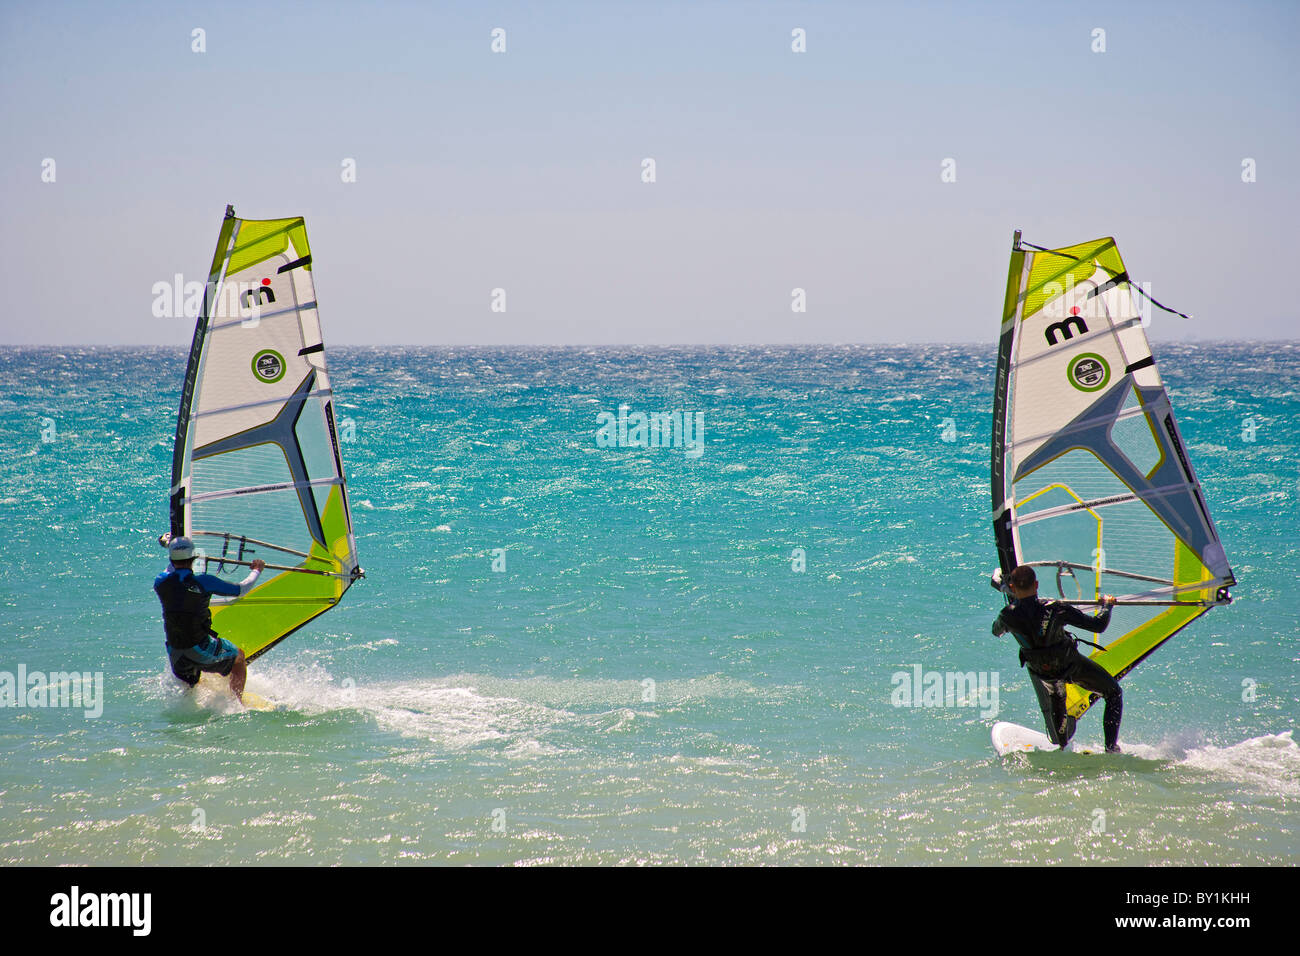 Water activity in Tarifa, the best place for watersports in Andalucia, Spain - Stock Image